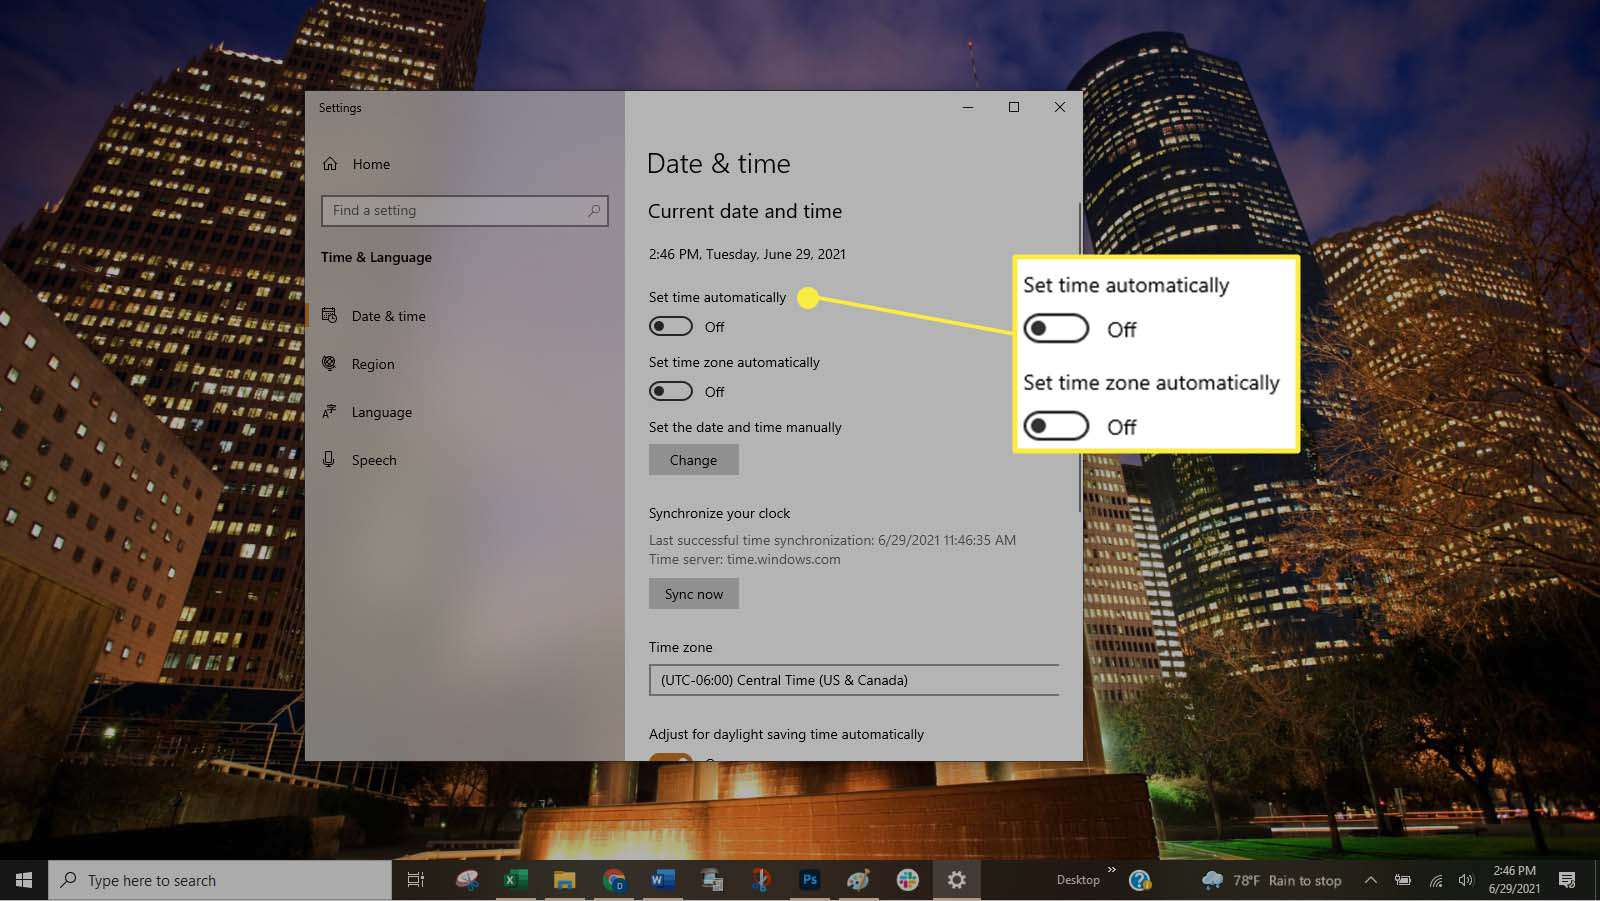 Changing the settings in Windows to allow you to manually change date and time.